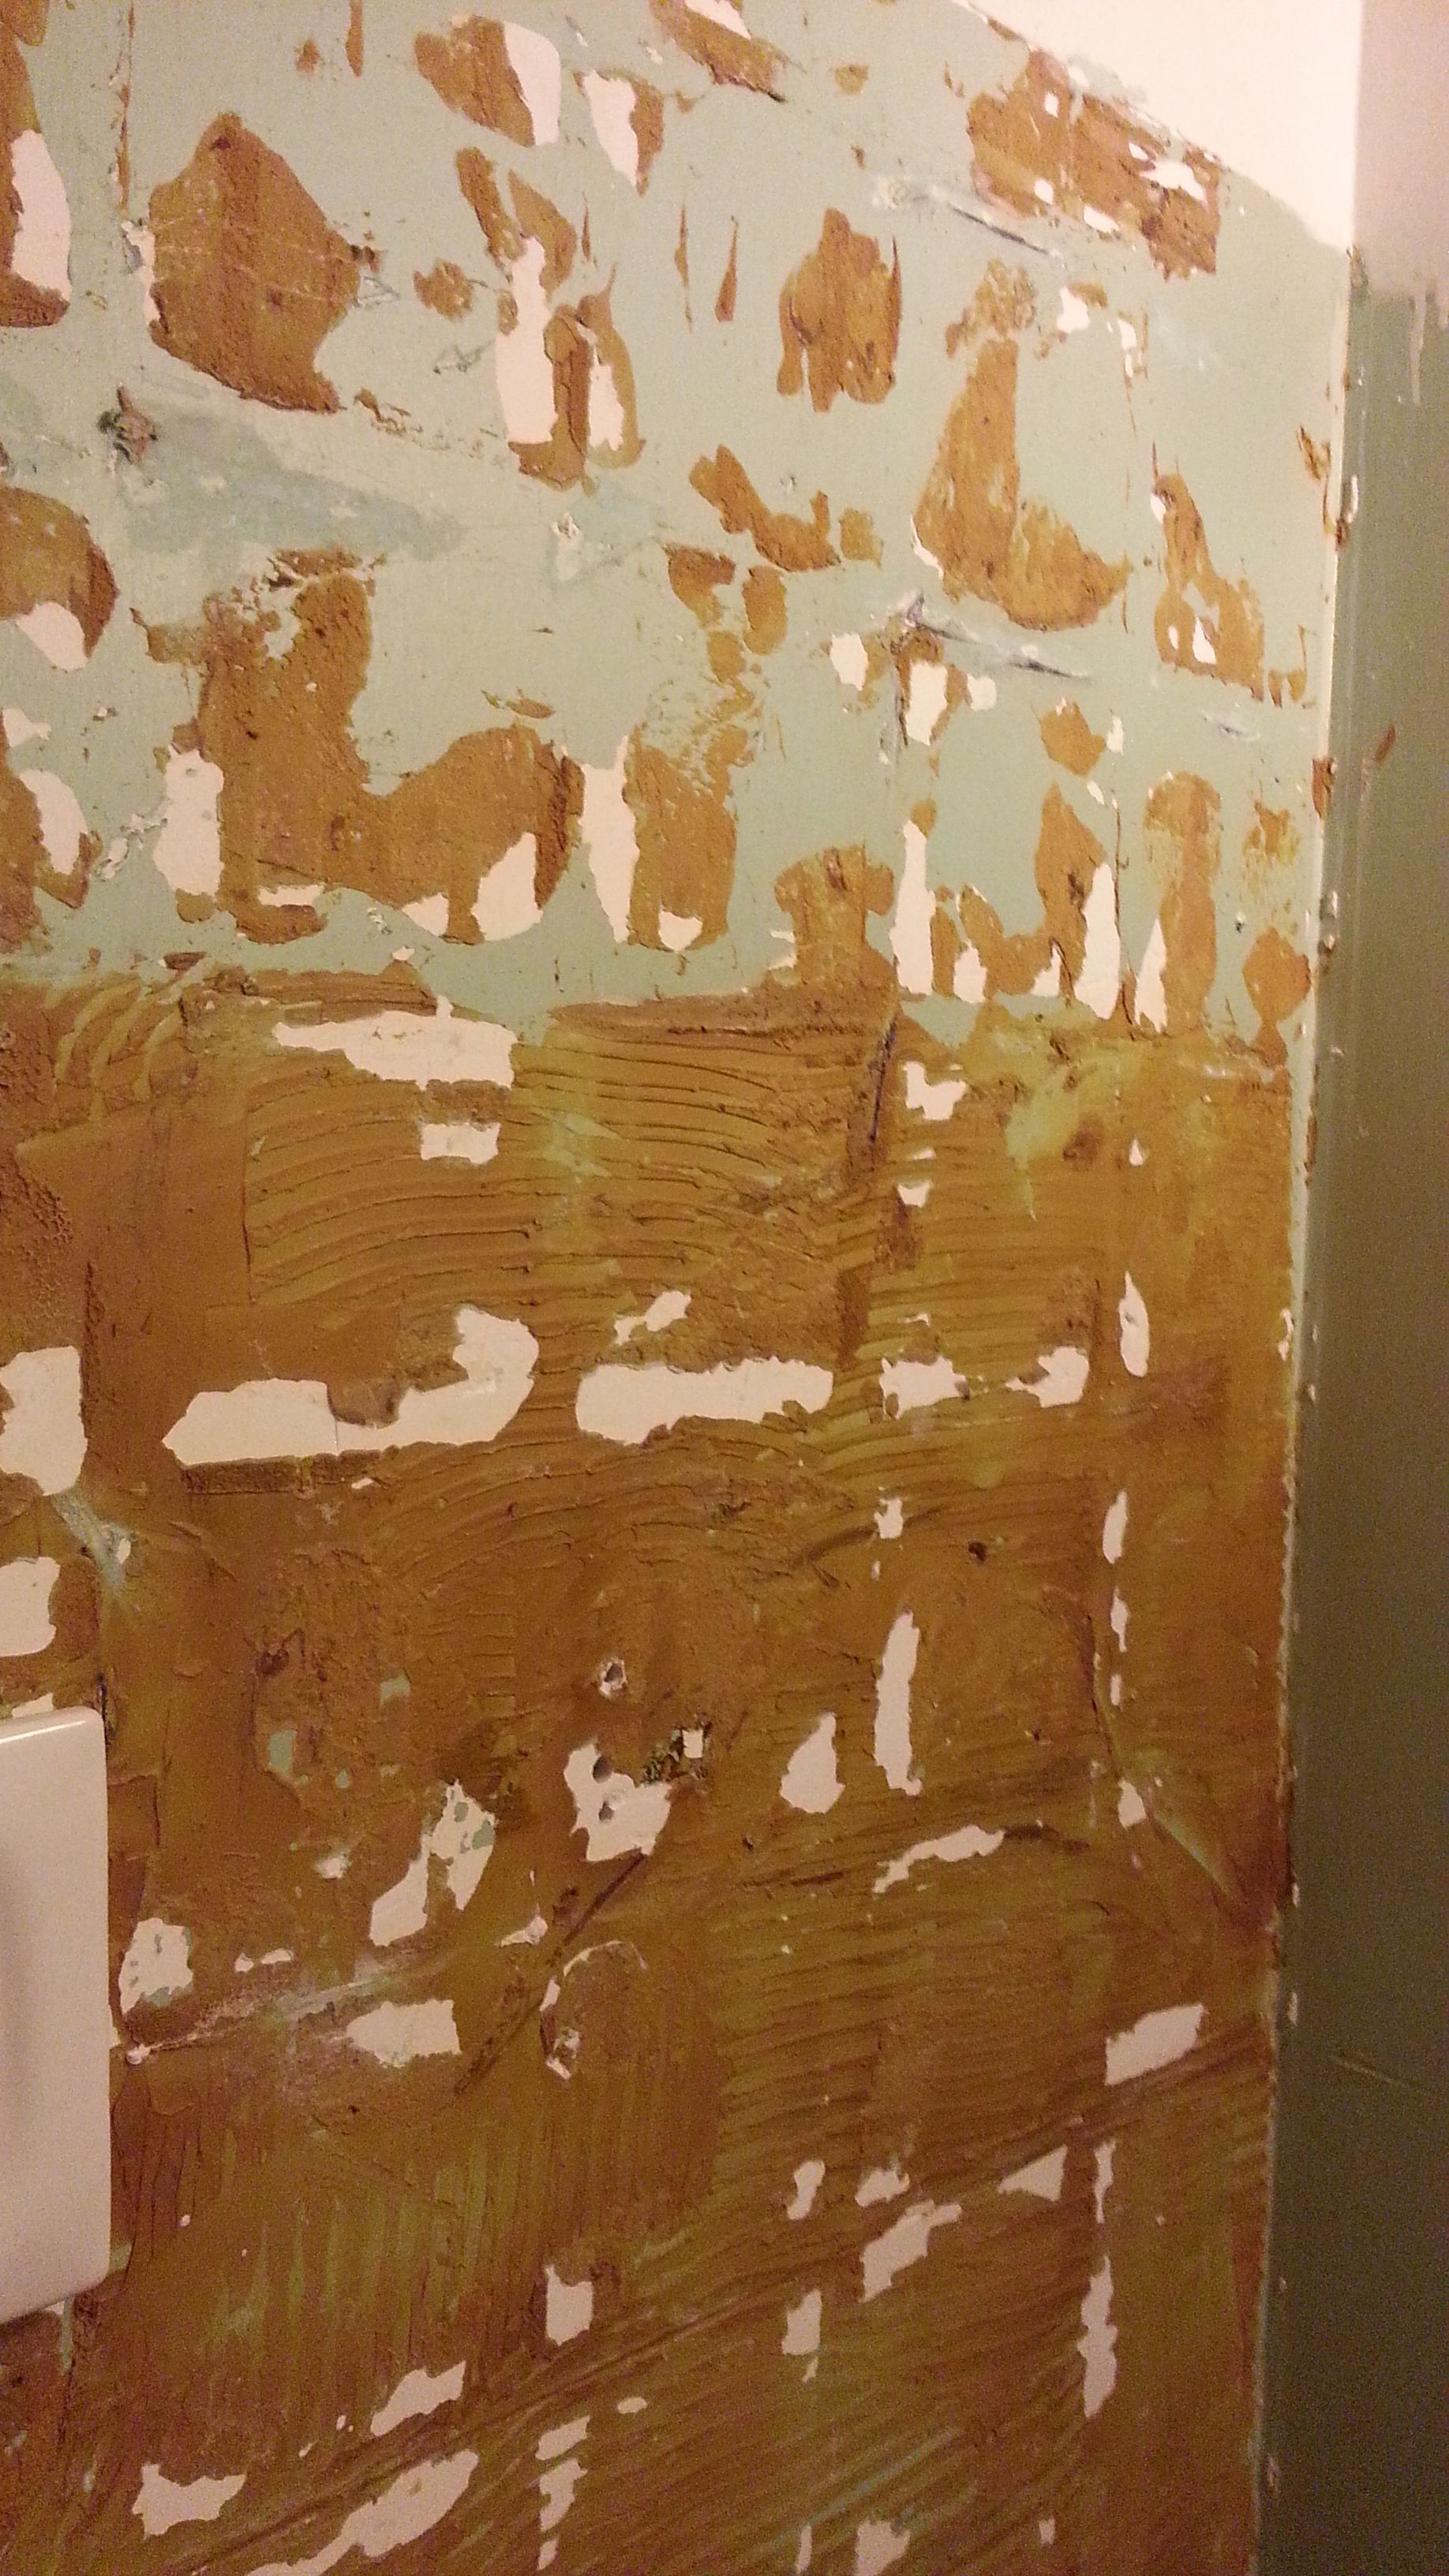 How To Remove Tile Adhesive Without Ruining Walls Answer Just